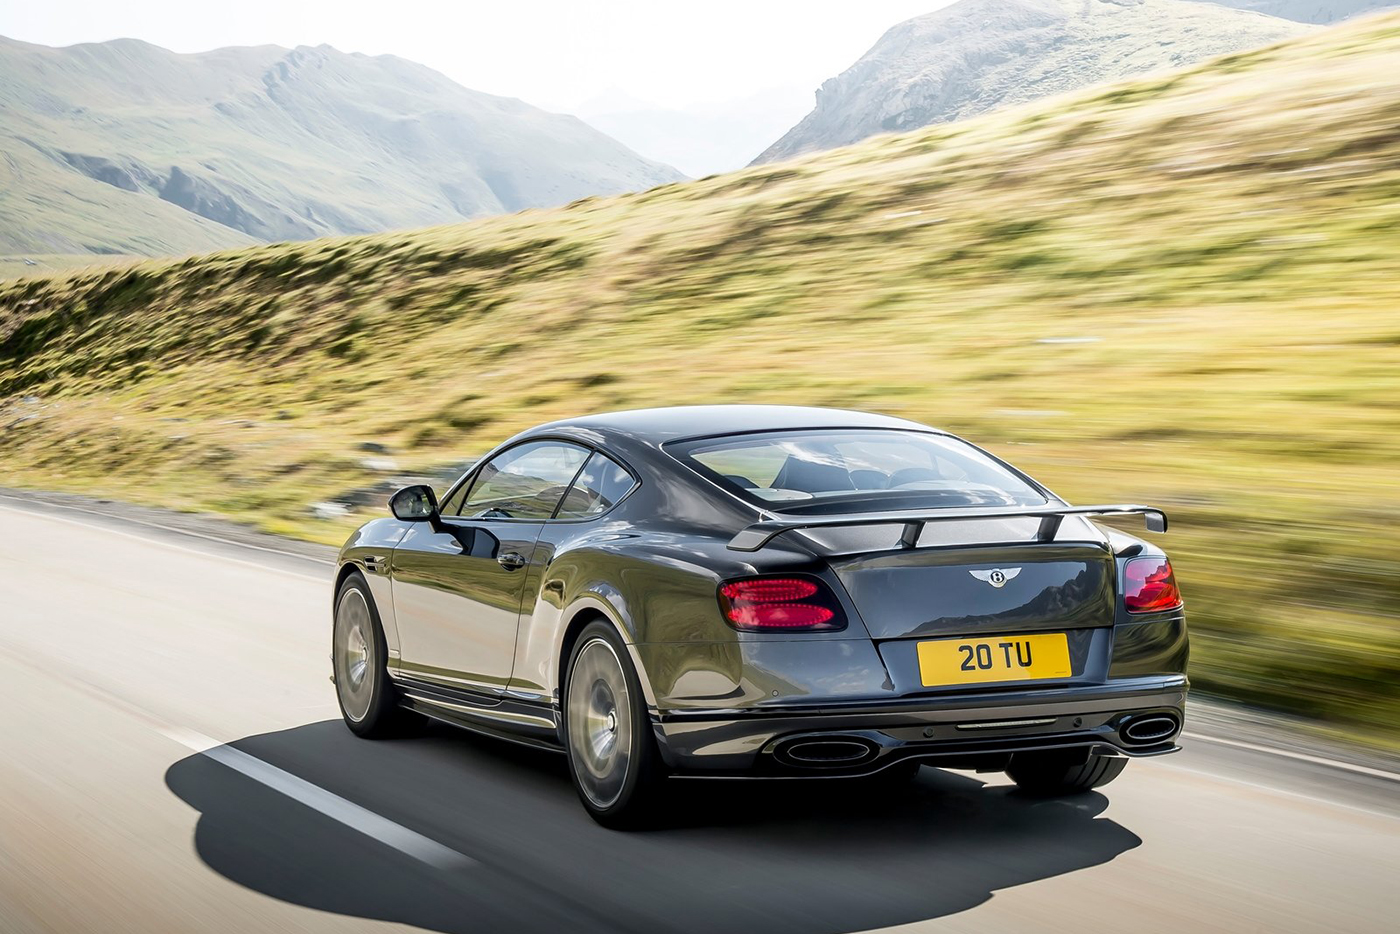 bentley-continental-supersports-2018-1600-04.jpg